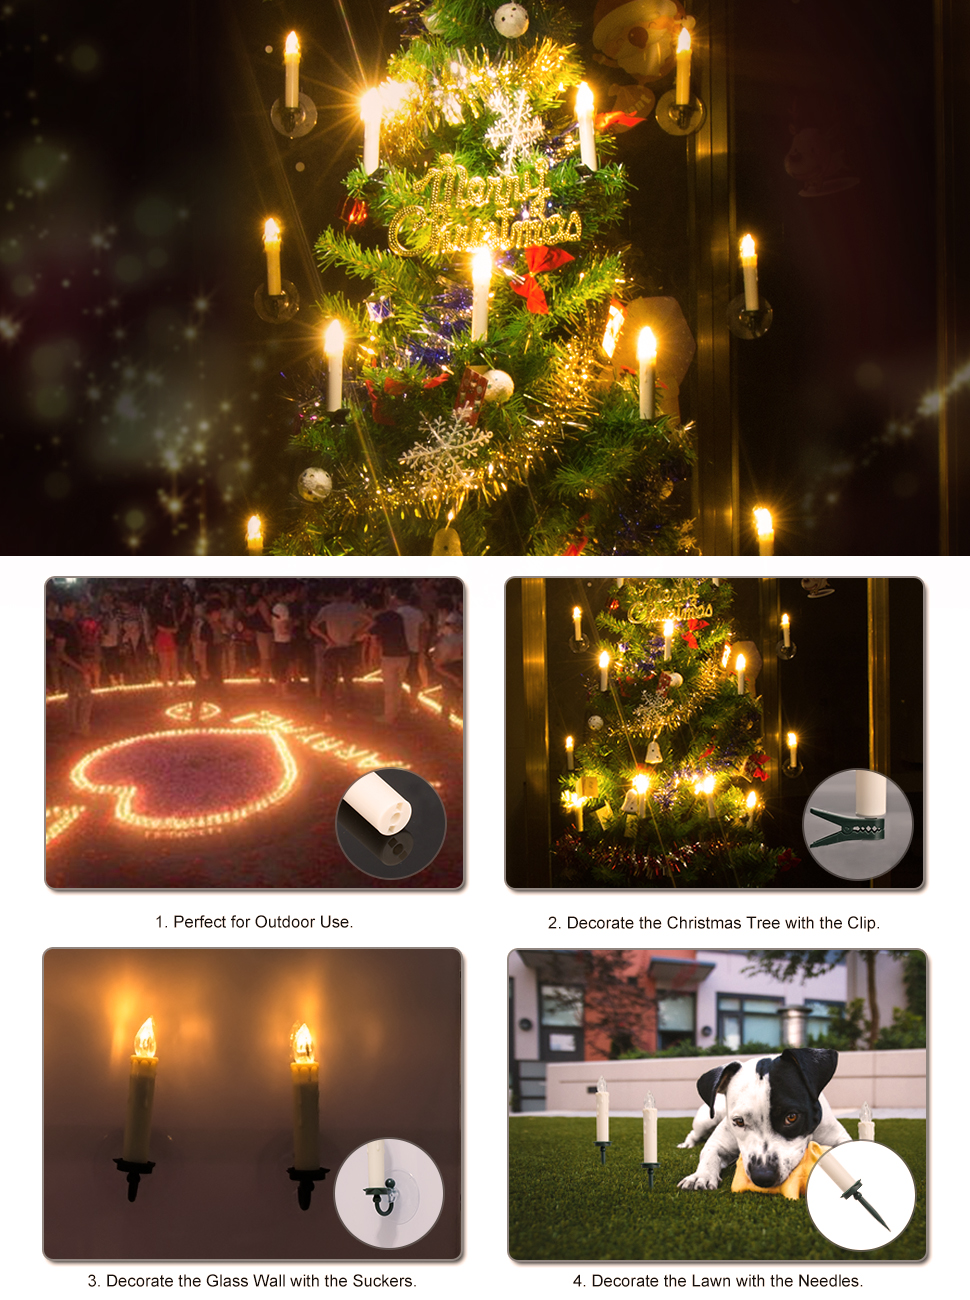 Amazon.com: PChero Dimmable Timer Candles, 10pcs Warm White LED ...